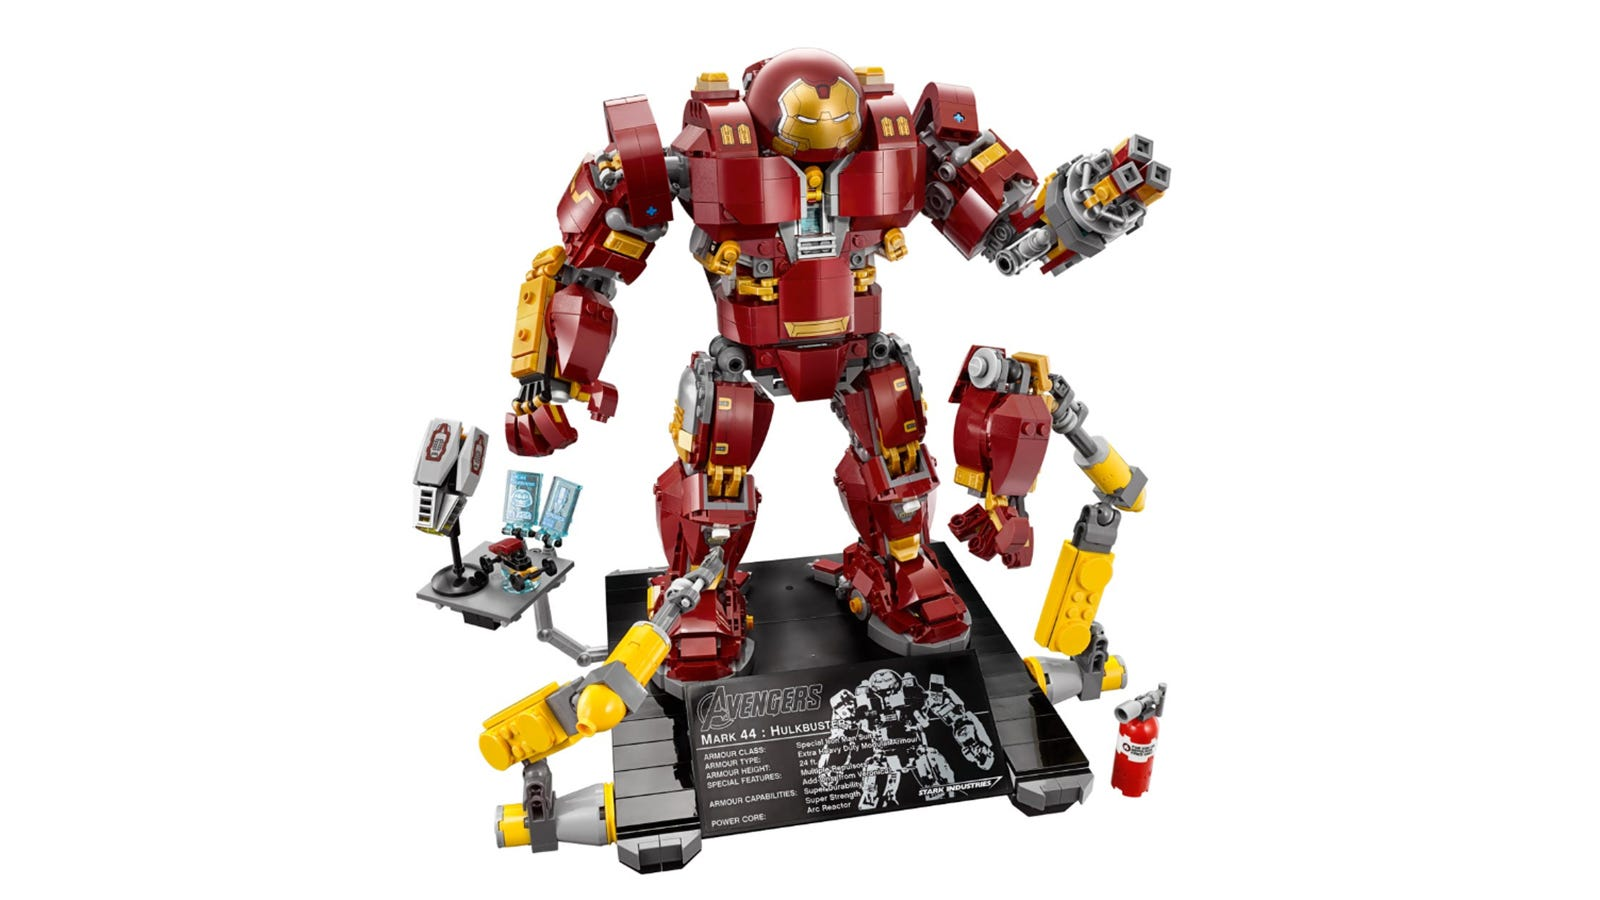 LEGO MARVEL The Hulkbuster: Ultron Edition